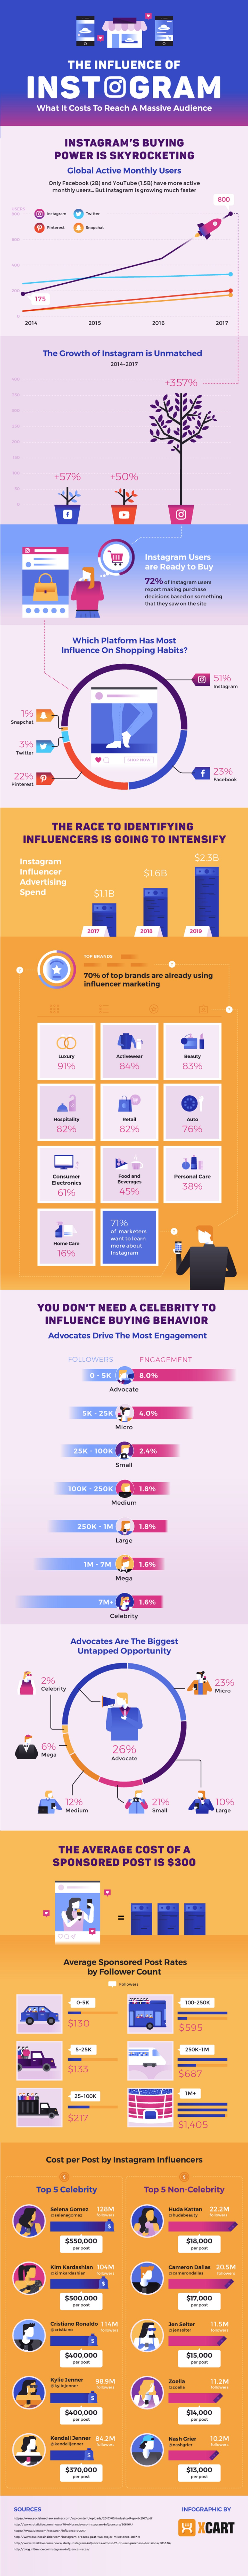 X-Cart Instagram influencer infographic